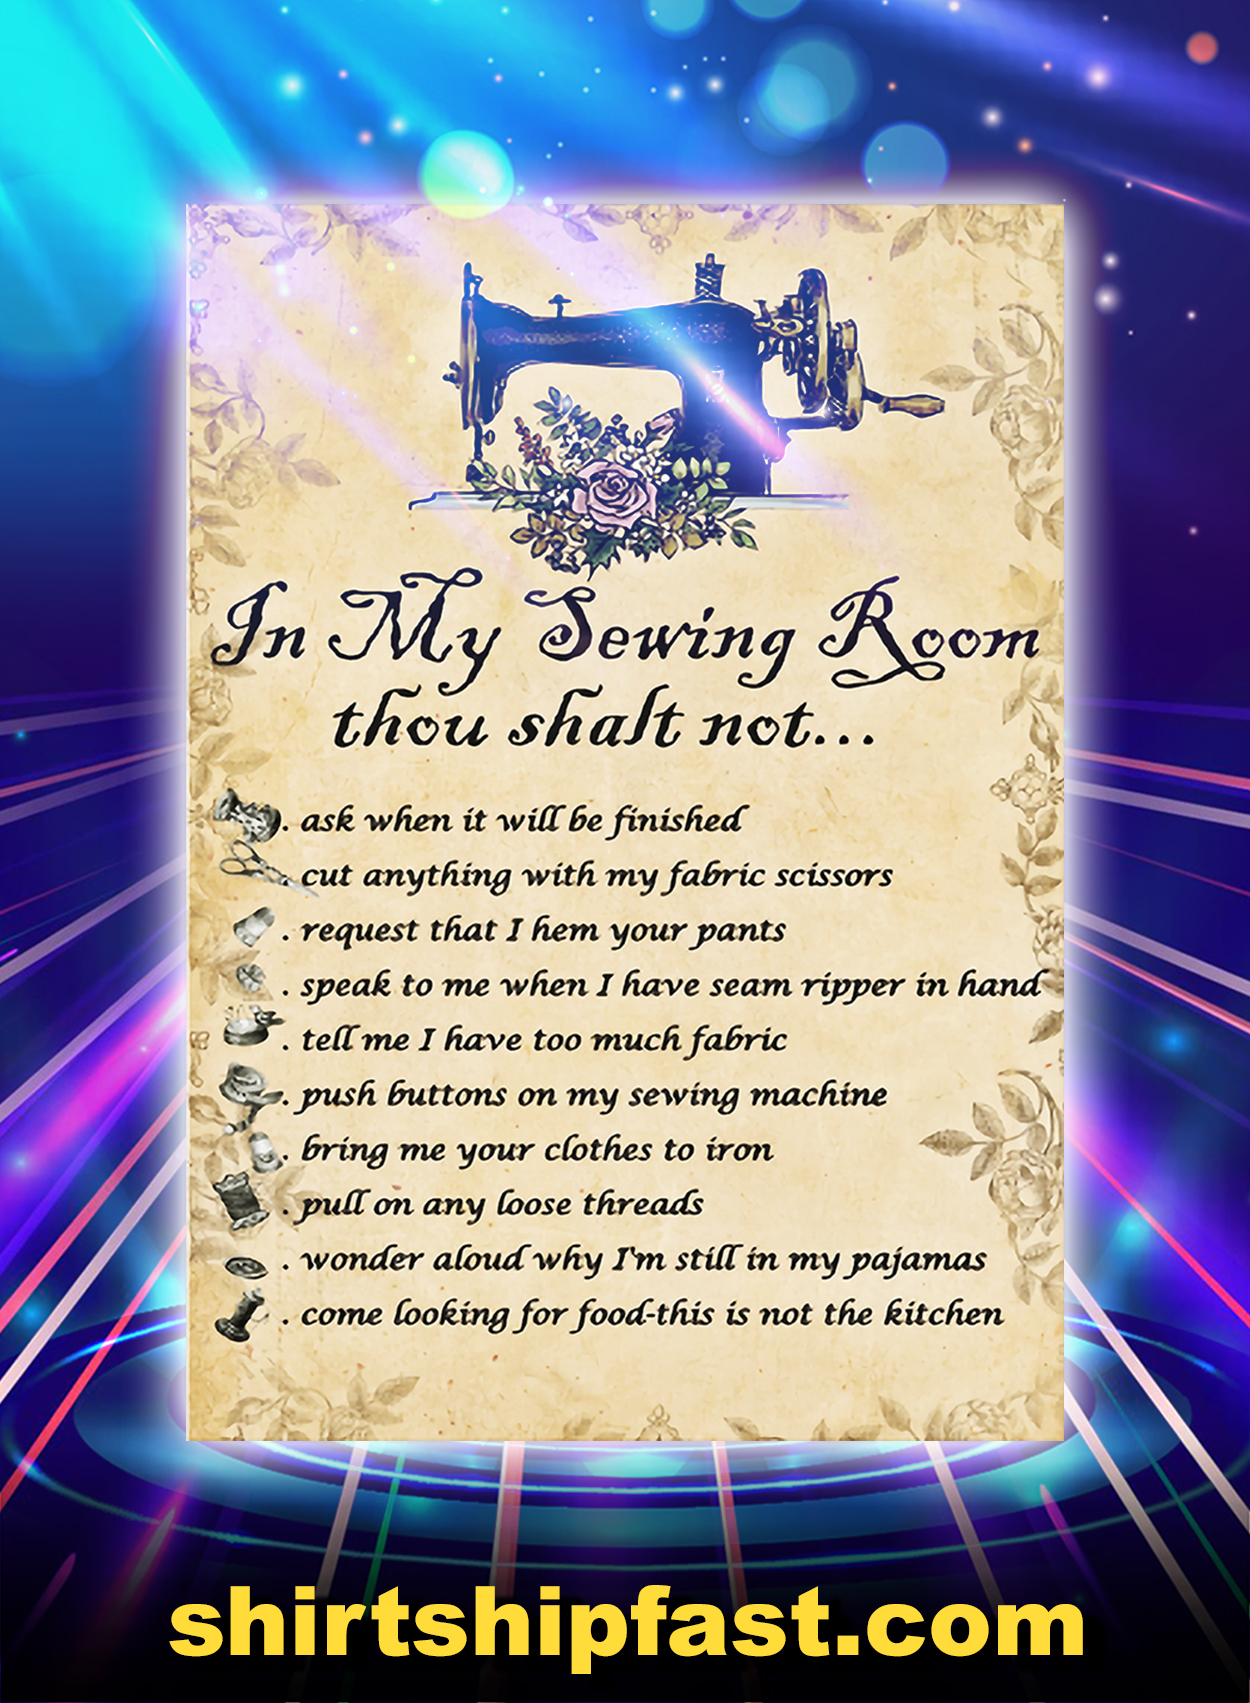 In My Sewing Room Thou Shalt Not Ask When It Will Be Finished Poster - A3